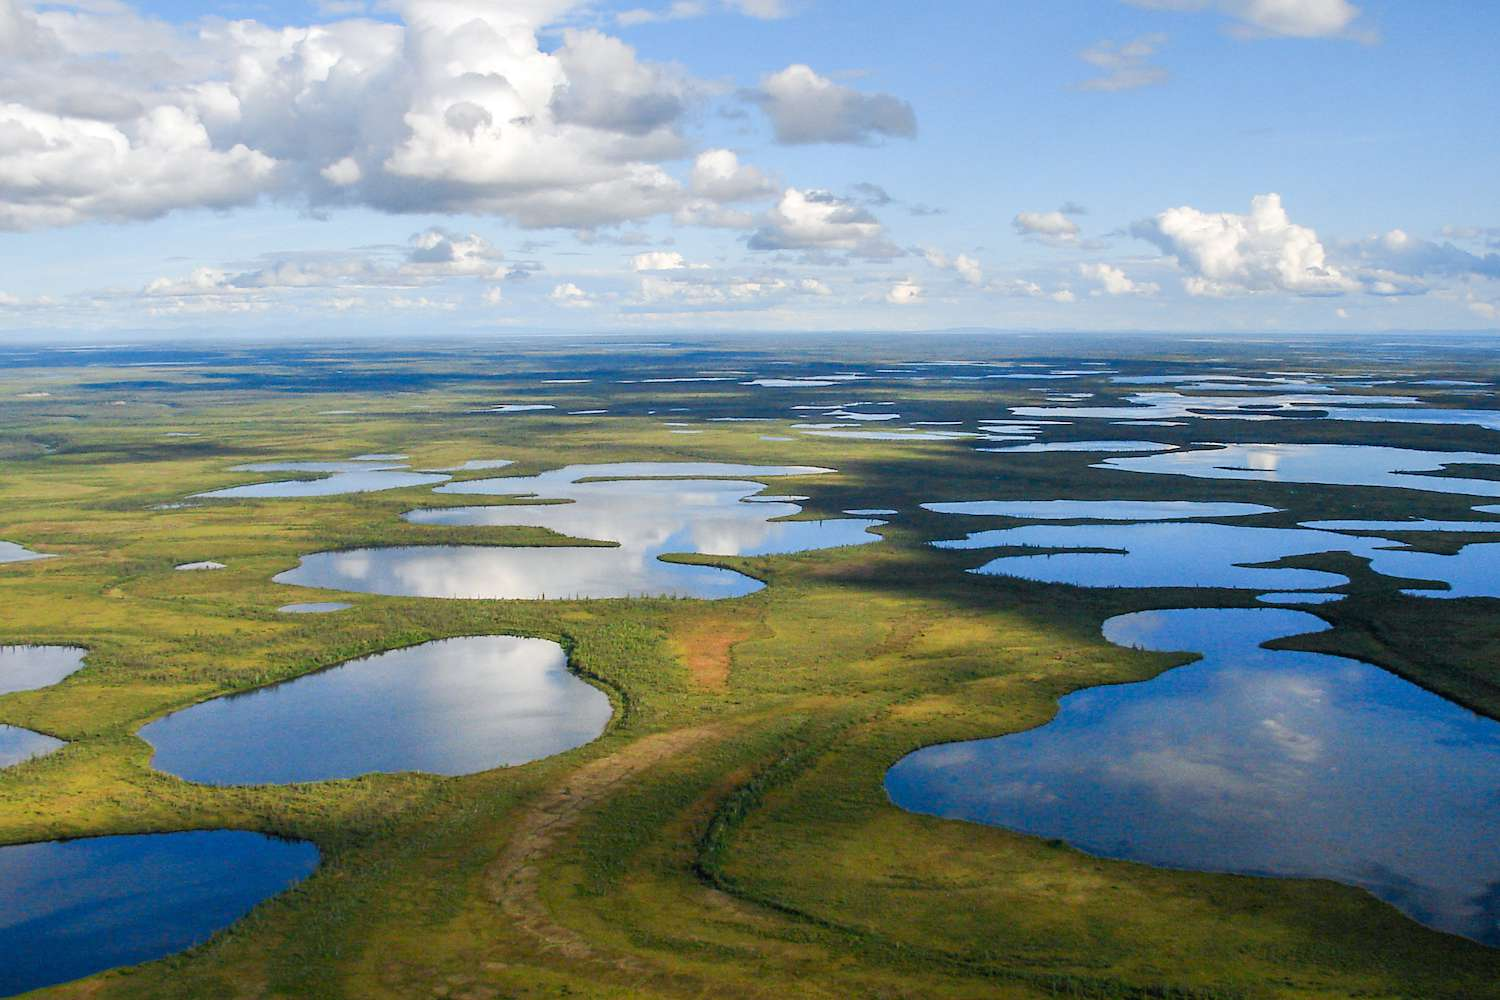 An aerial view of Vuntut National Park in the summer